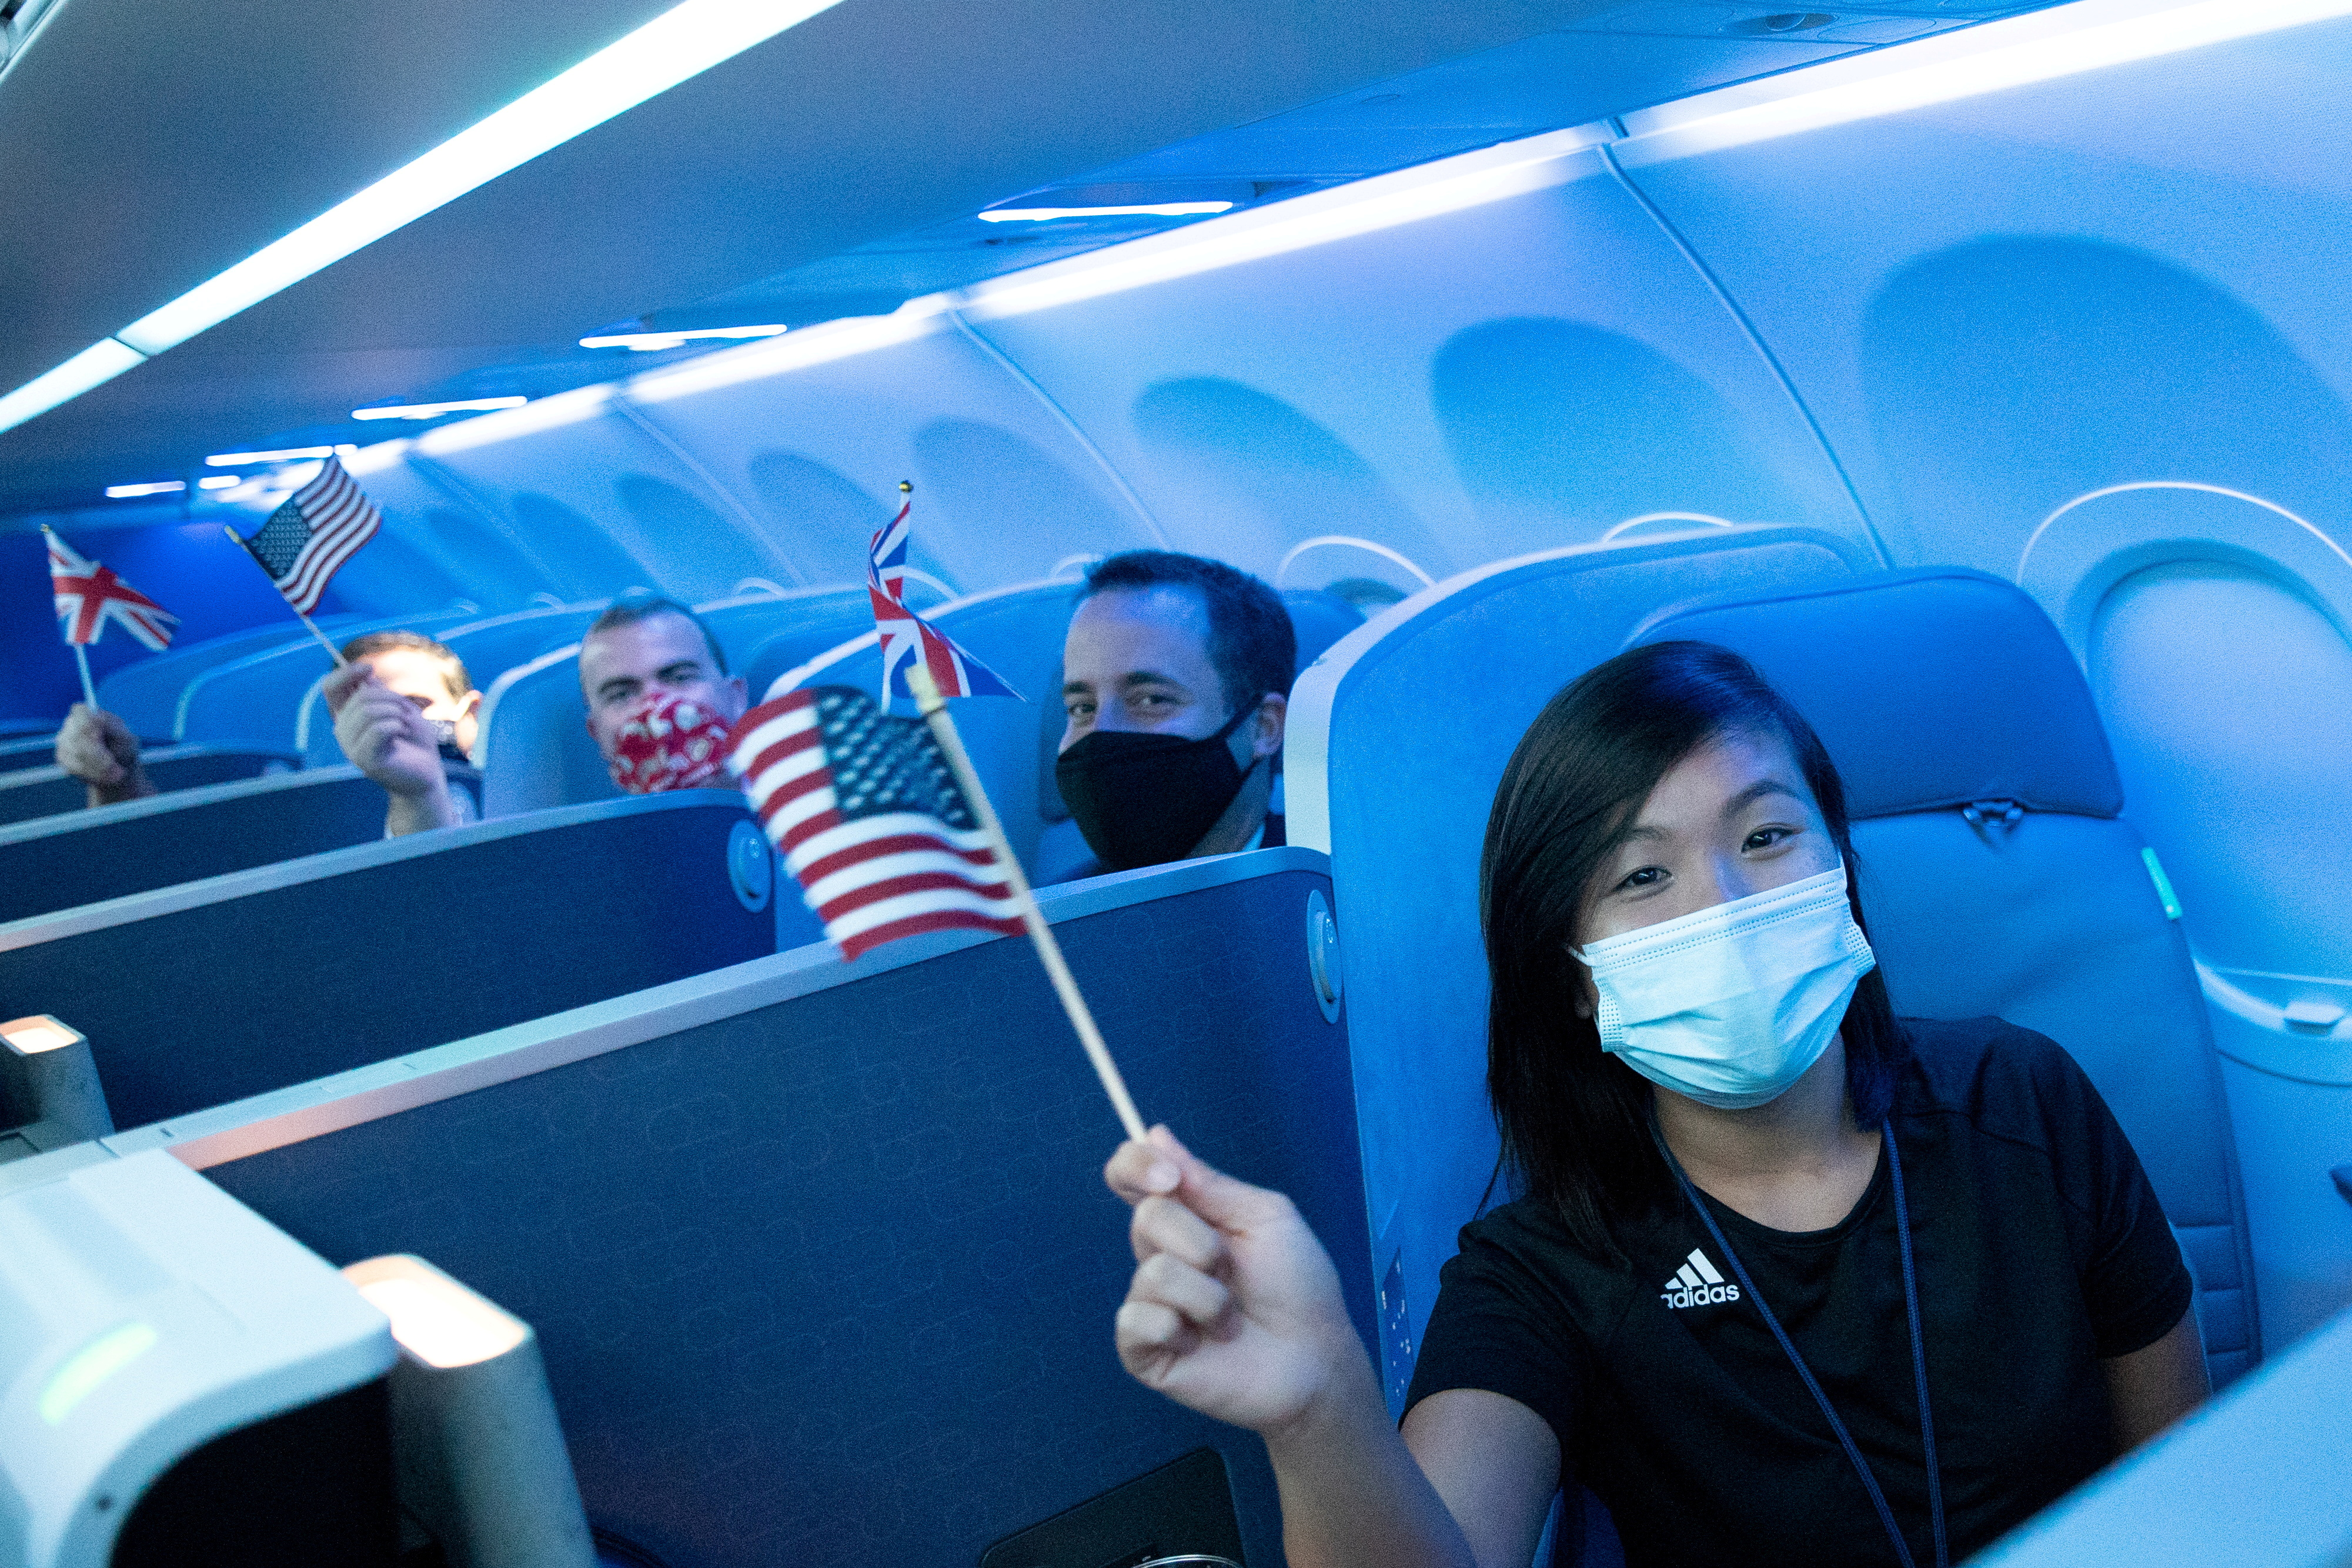 Passengers wearing protective masks hold American and British flags before a JetBlue flight to London at JFK International Airport in the Queens borough of New York City, New York, U.S., August 11, 2021. REUTERS/Jeenah Moon